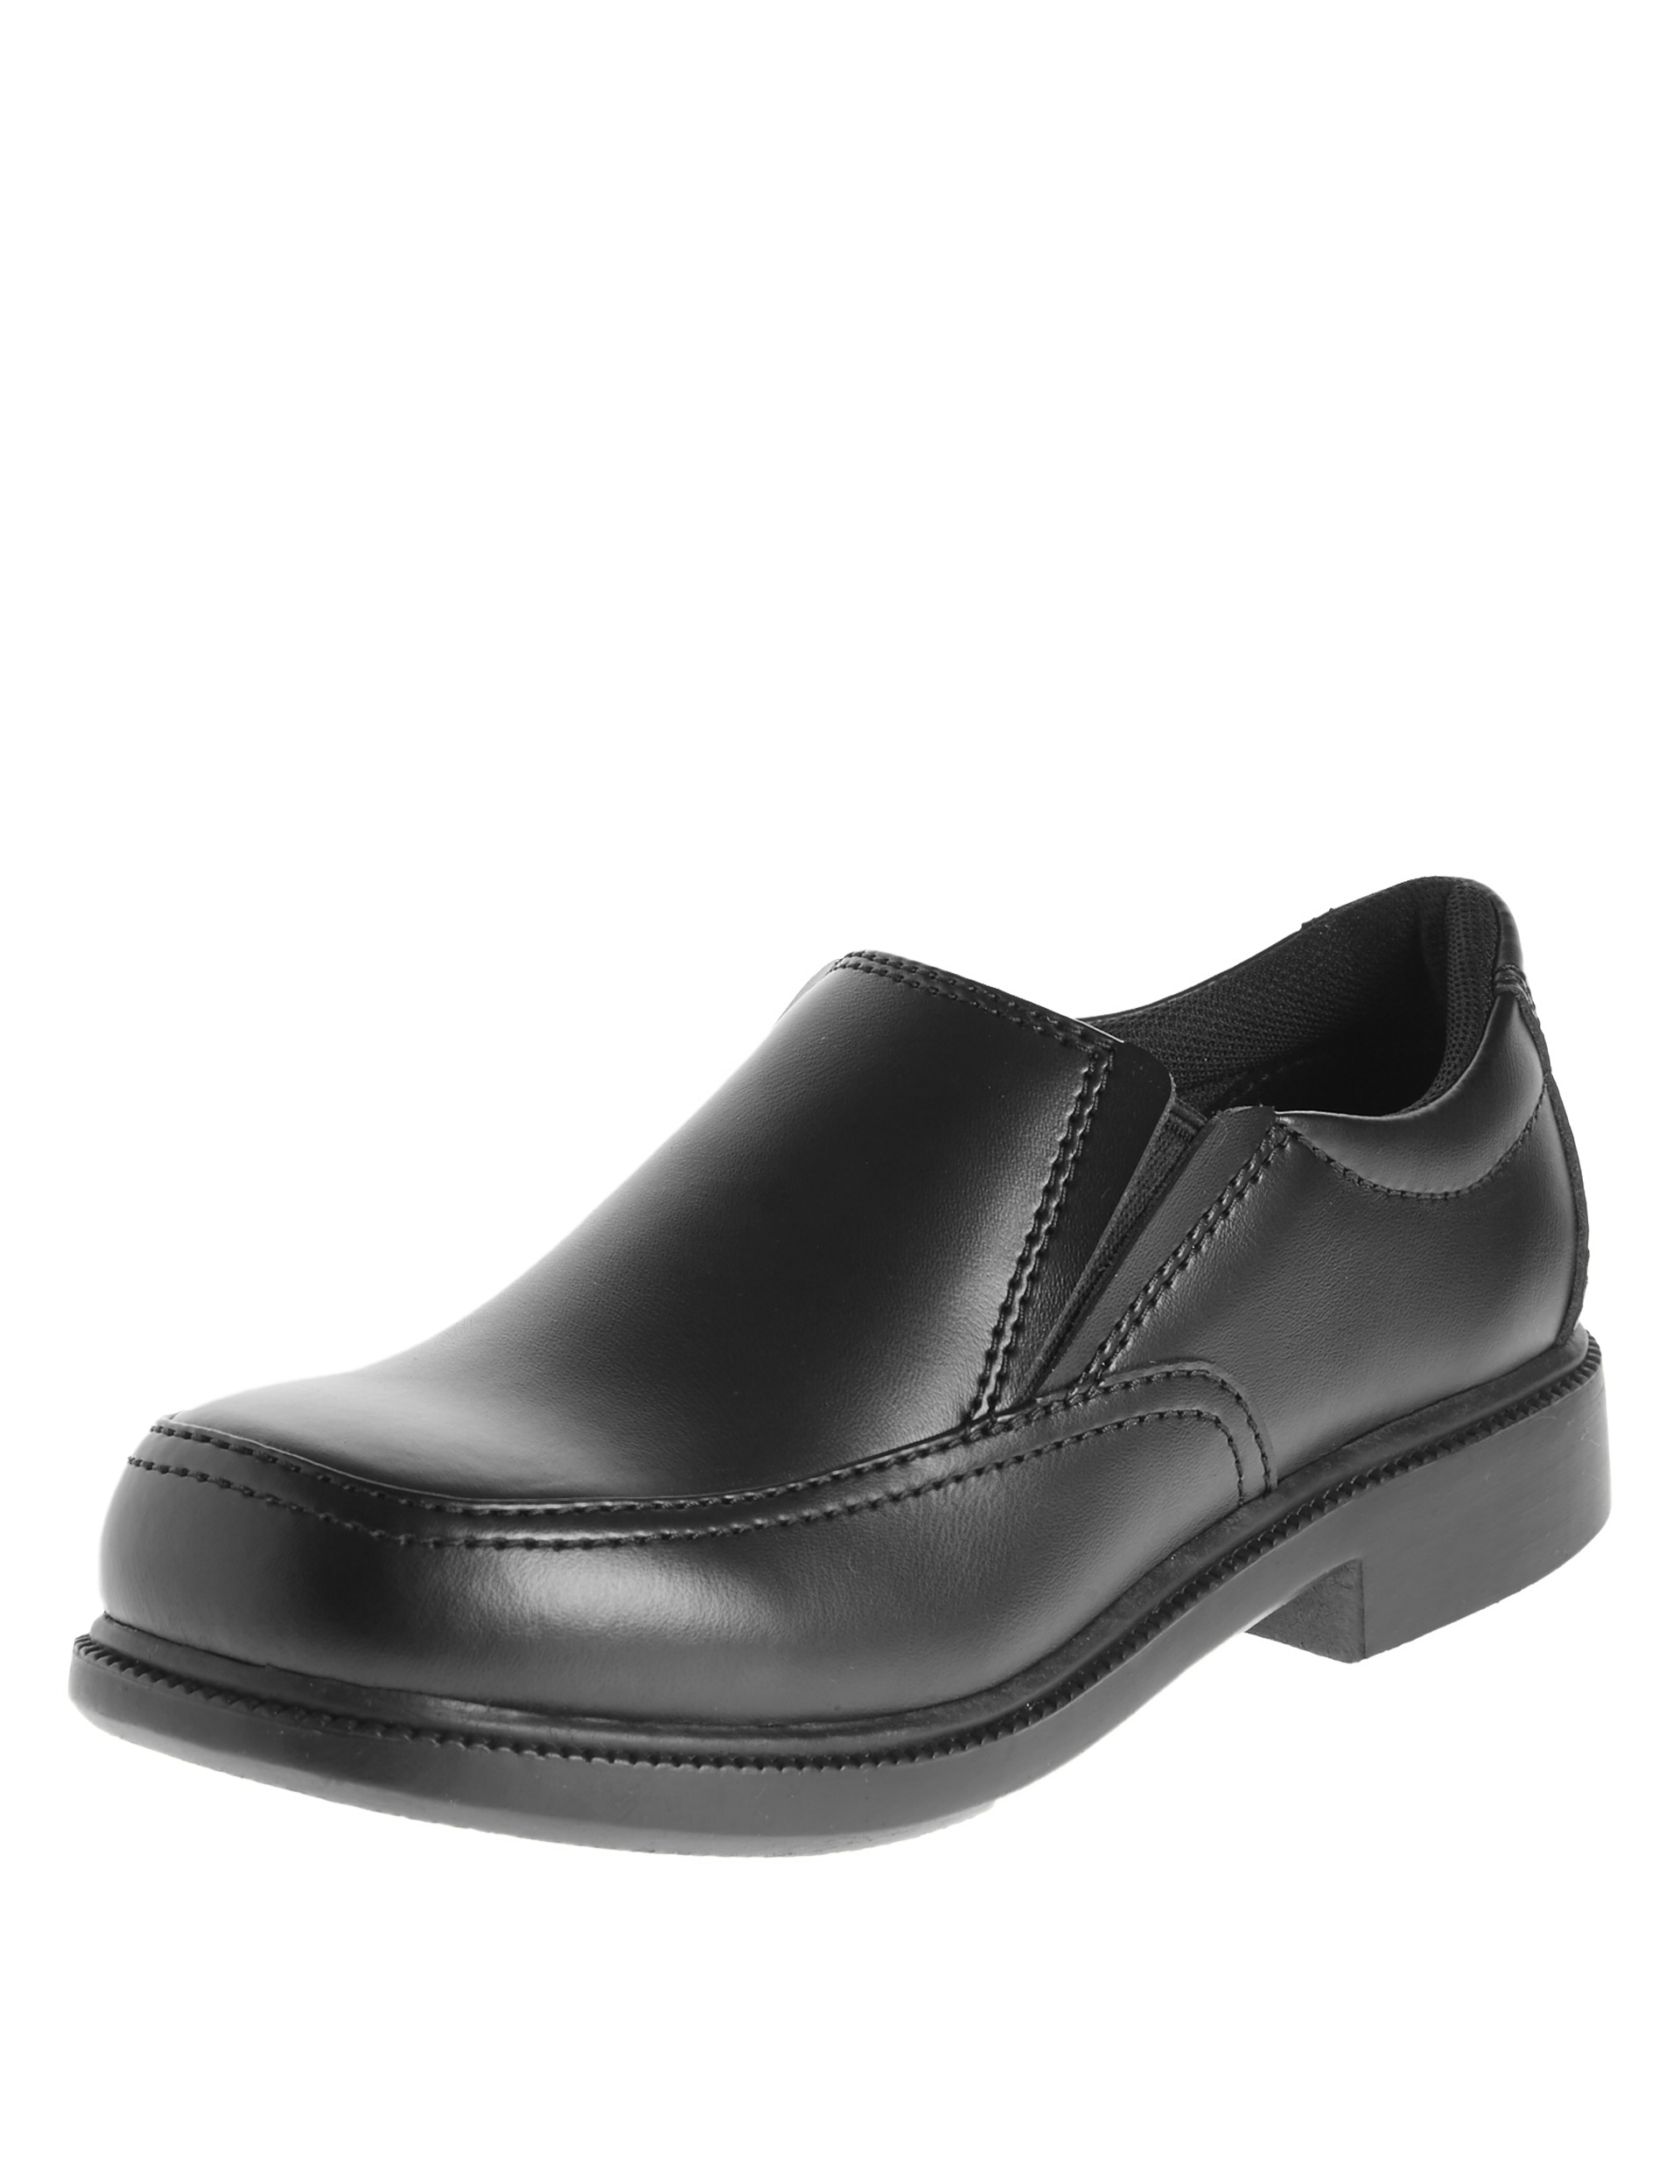 Best School Shoes Our Stress Less Back To School Shoes Guide